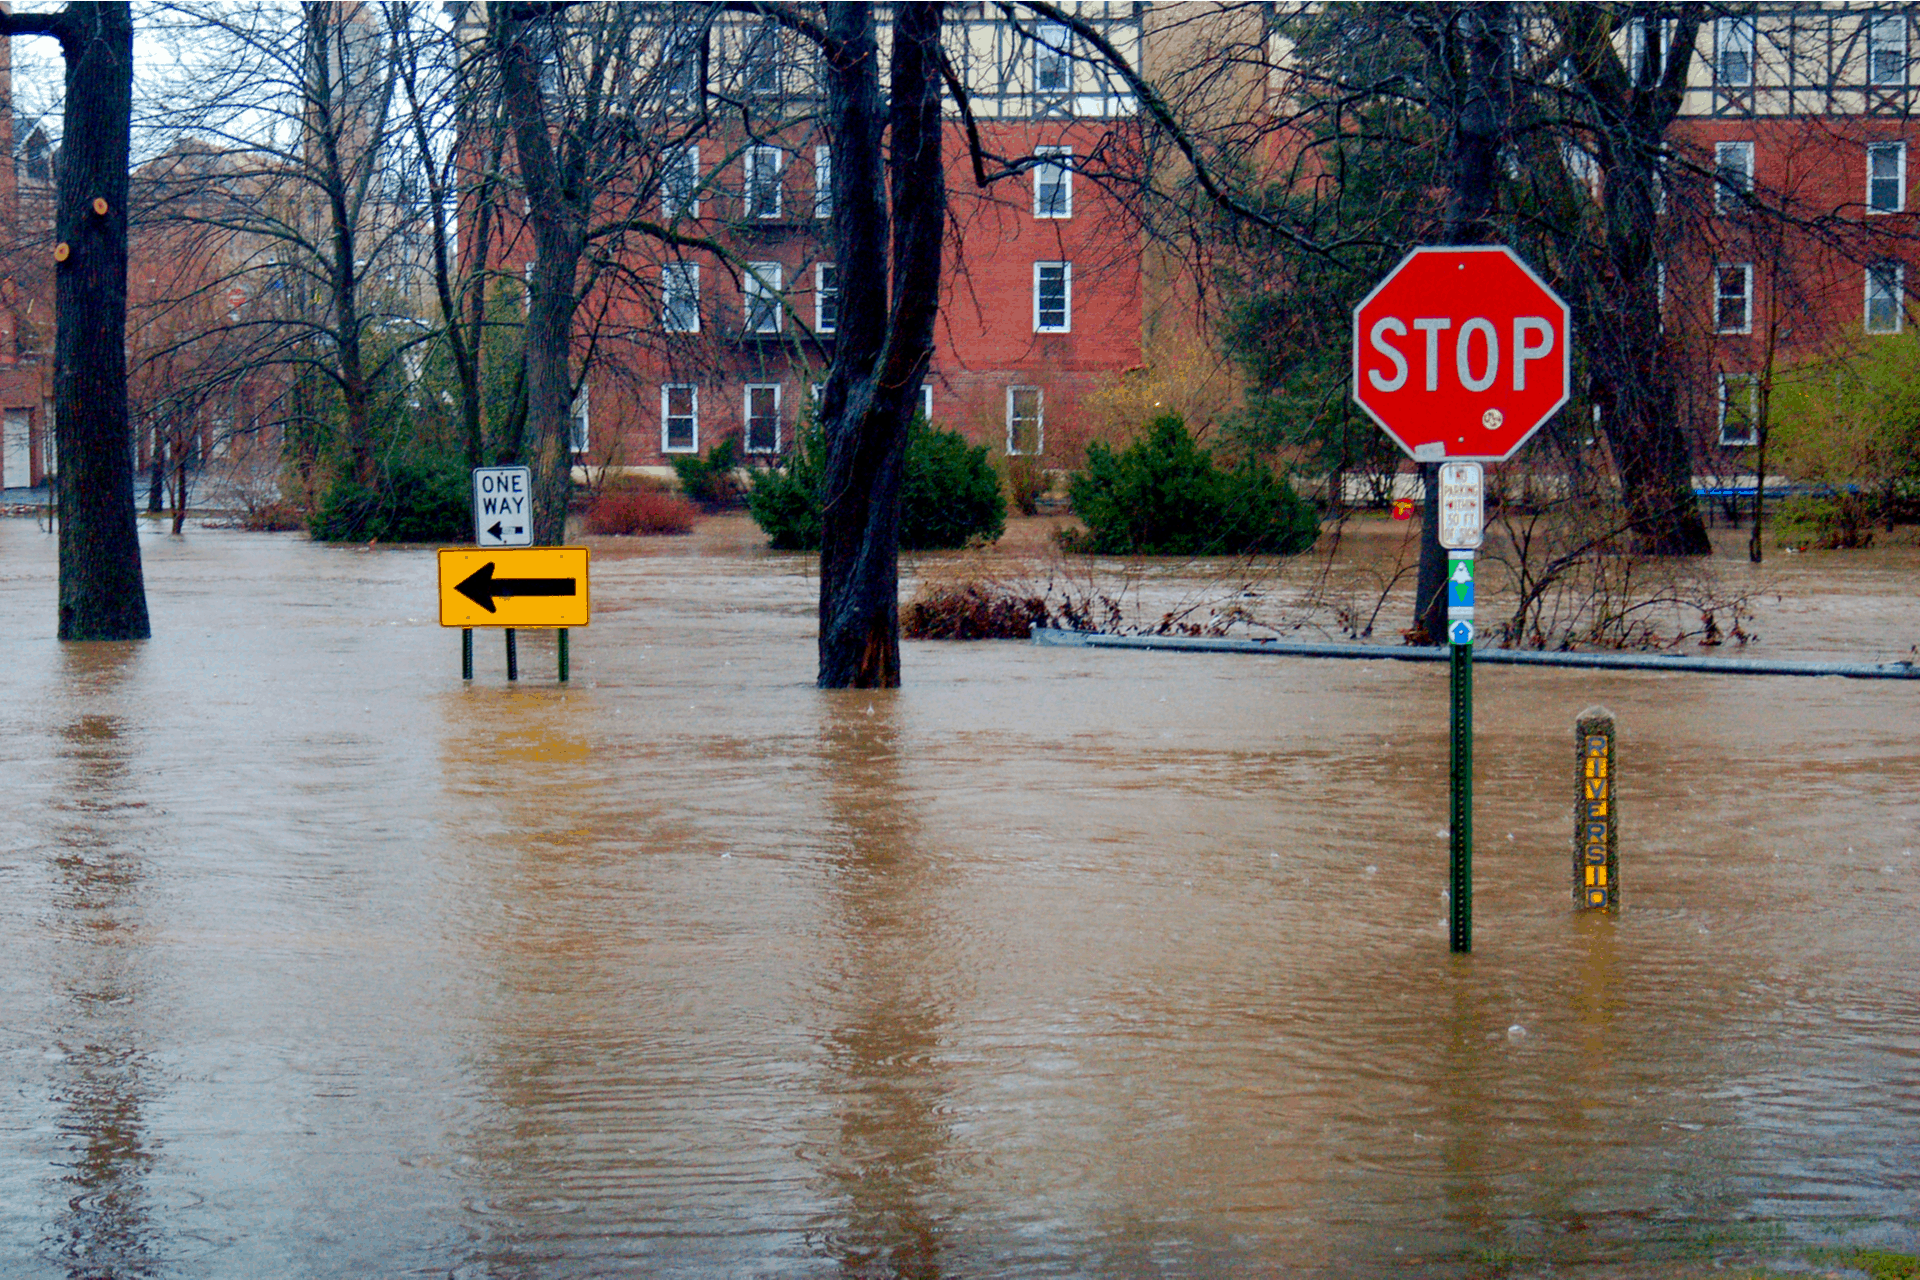 Cranford, NJ, USA April 15 The suburban town of Cranford, New Jersey in inundated with severe flooding following heavy rains